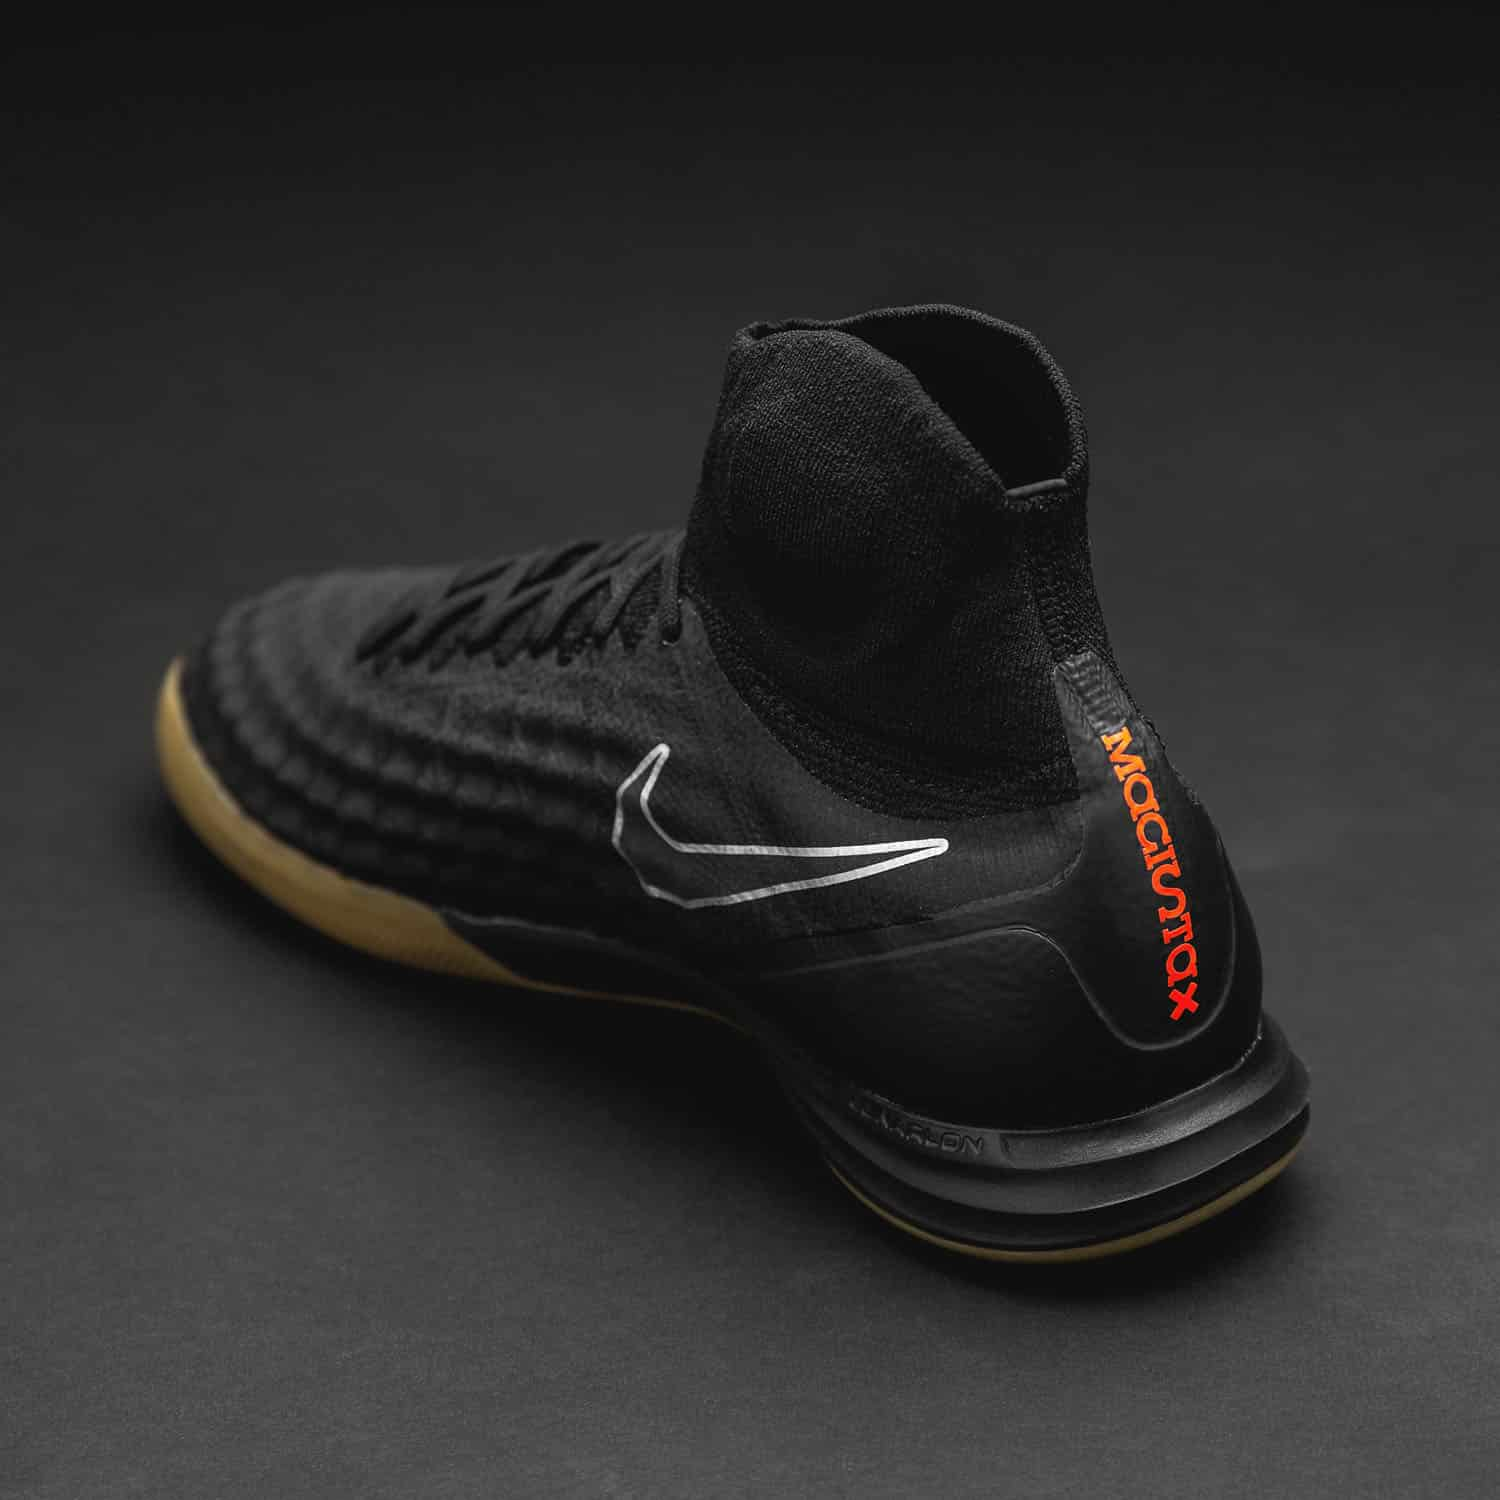 chaussures-football-Nike-MagistaX-II-Proximo-Pitch-Dark-1